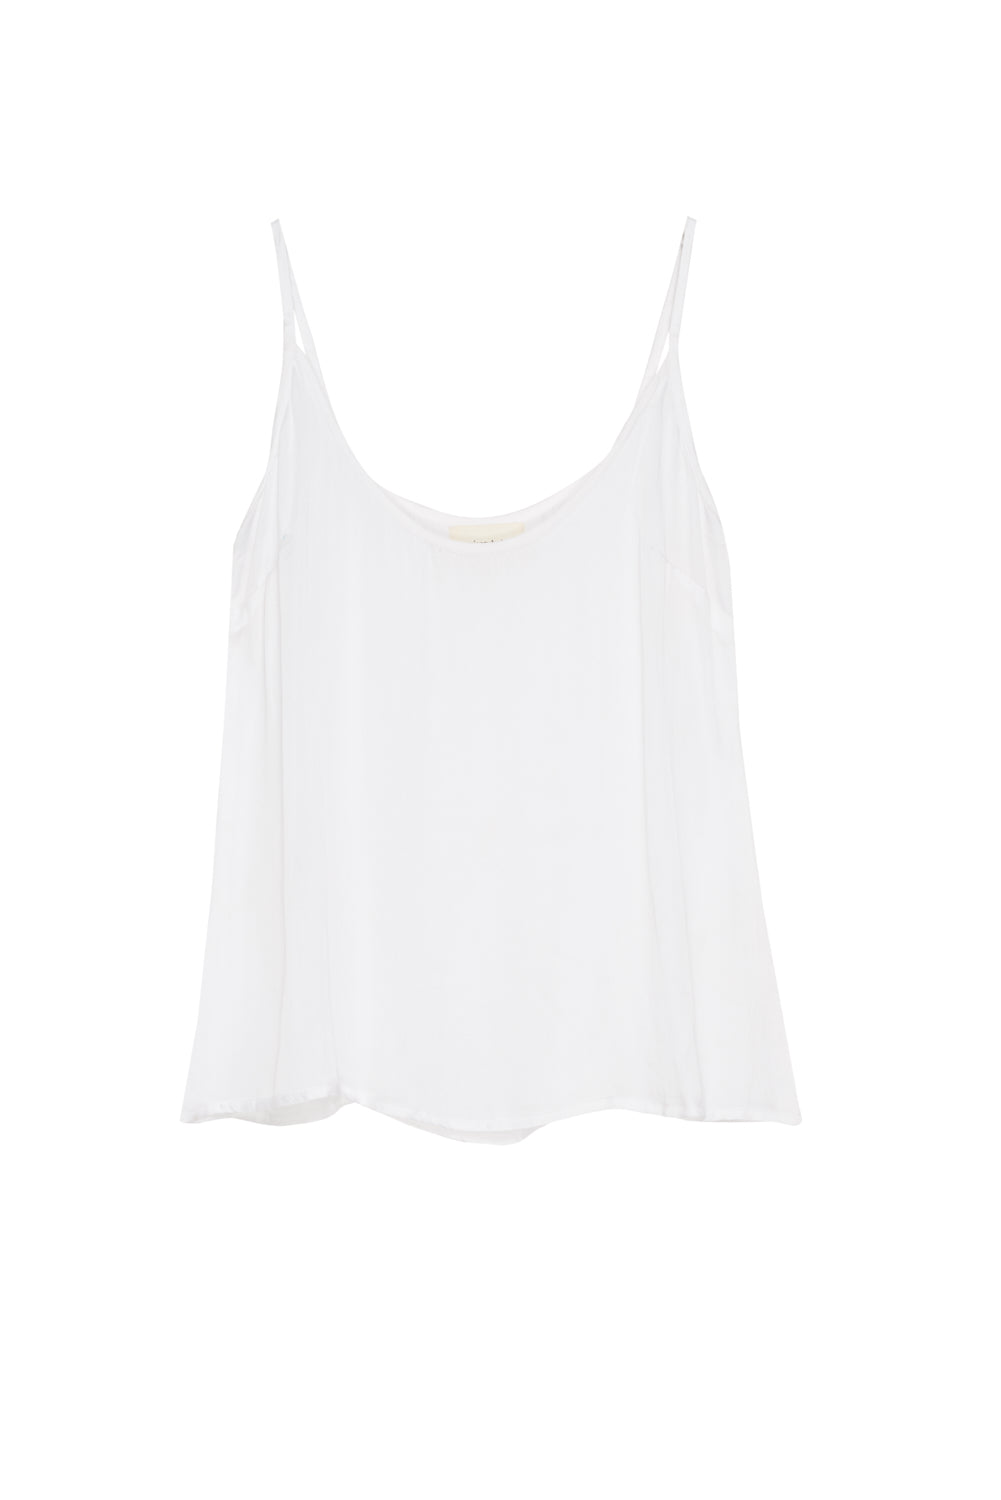 Cami Top - White